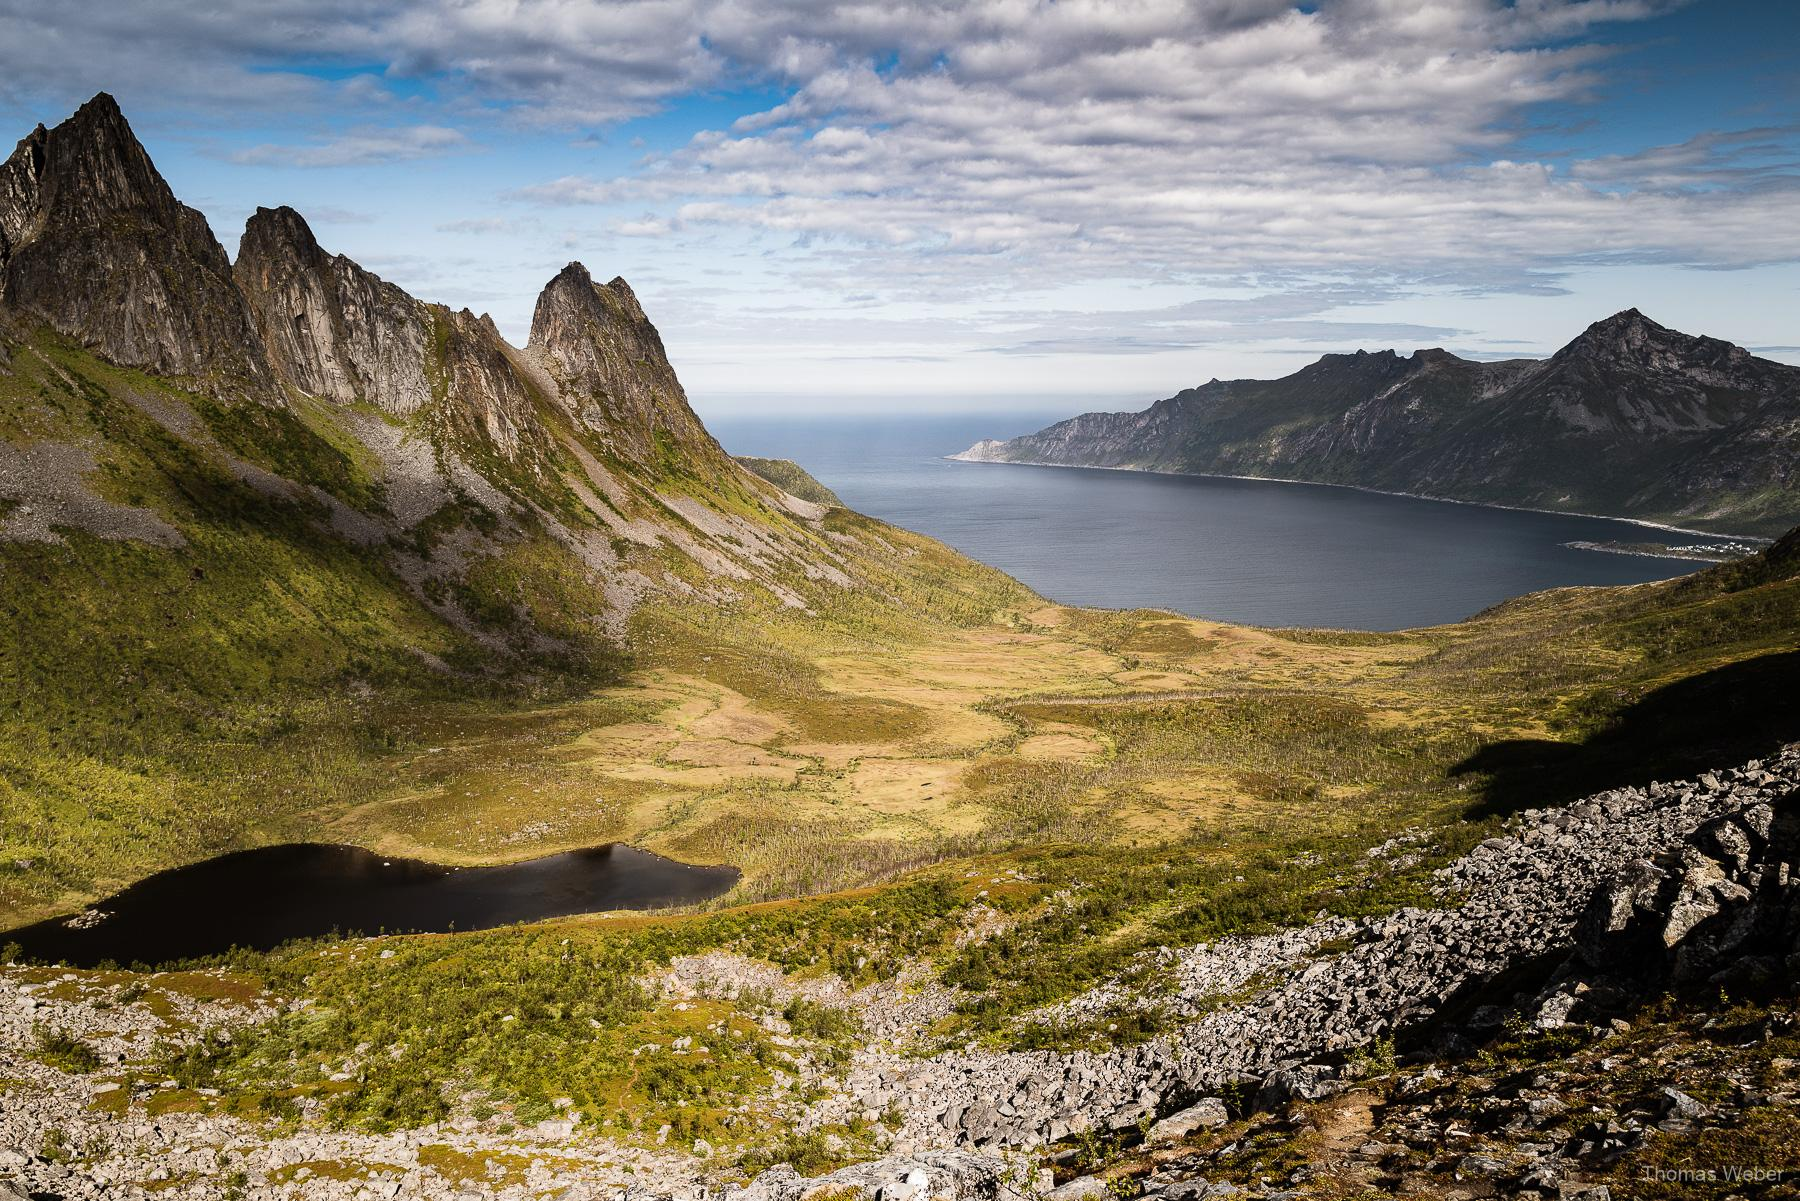 Die Insel Senja in Norwegen, Thomas Weber, Fotograf Oldenburg